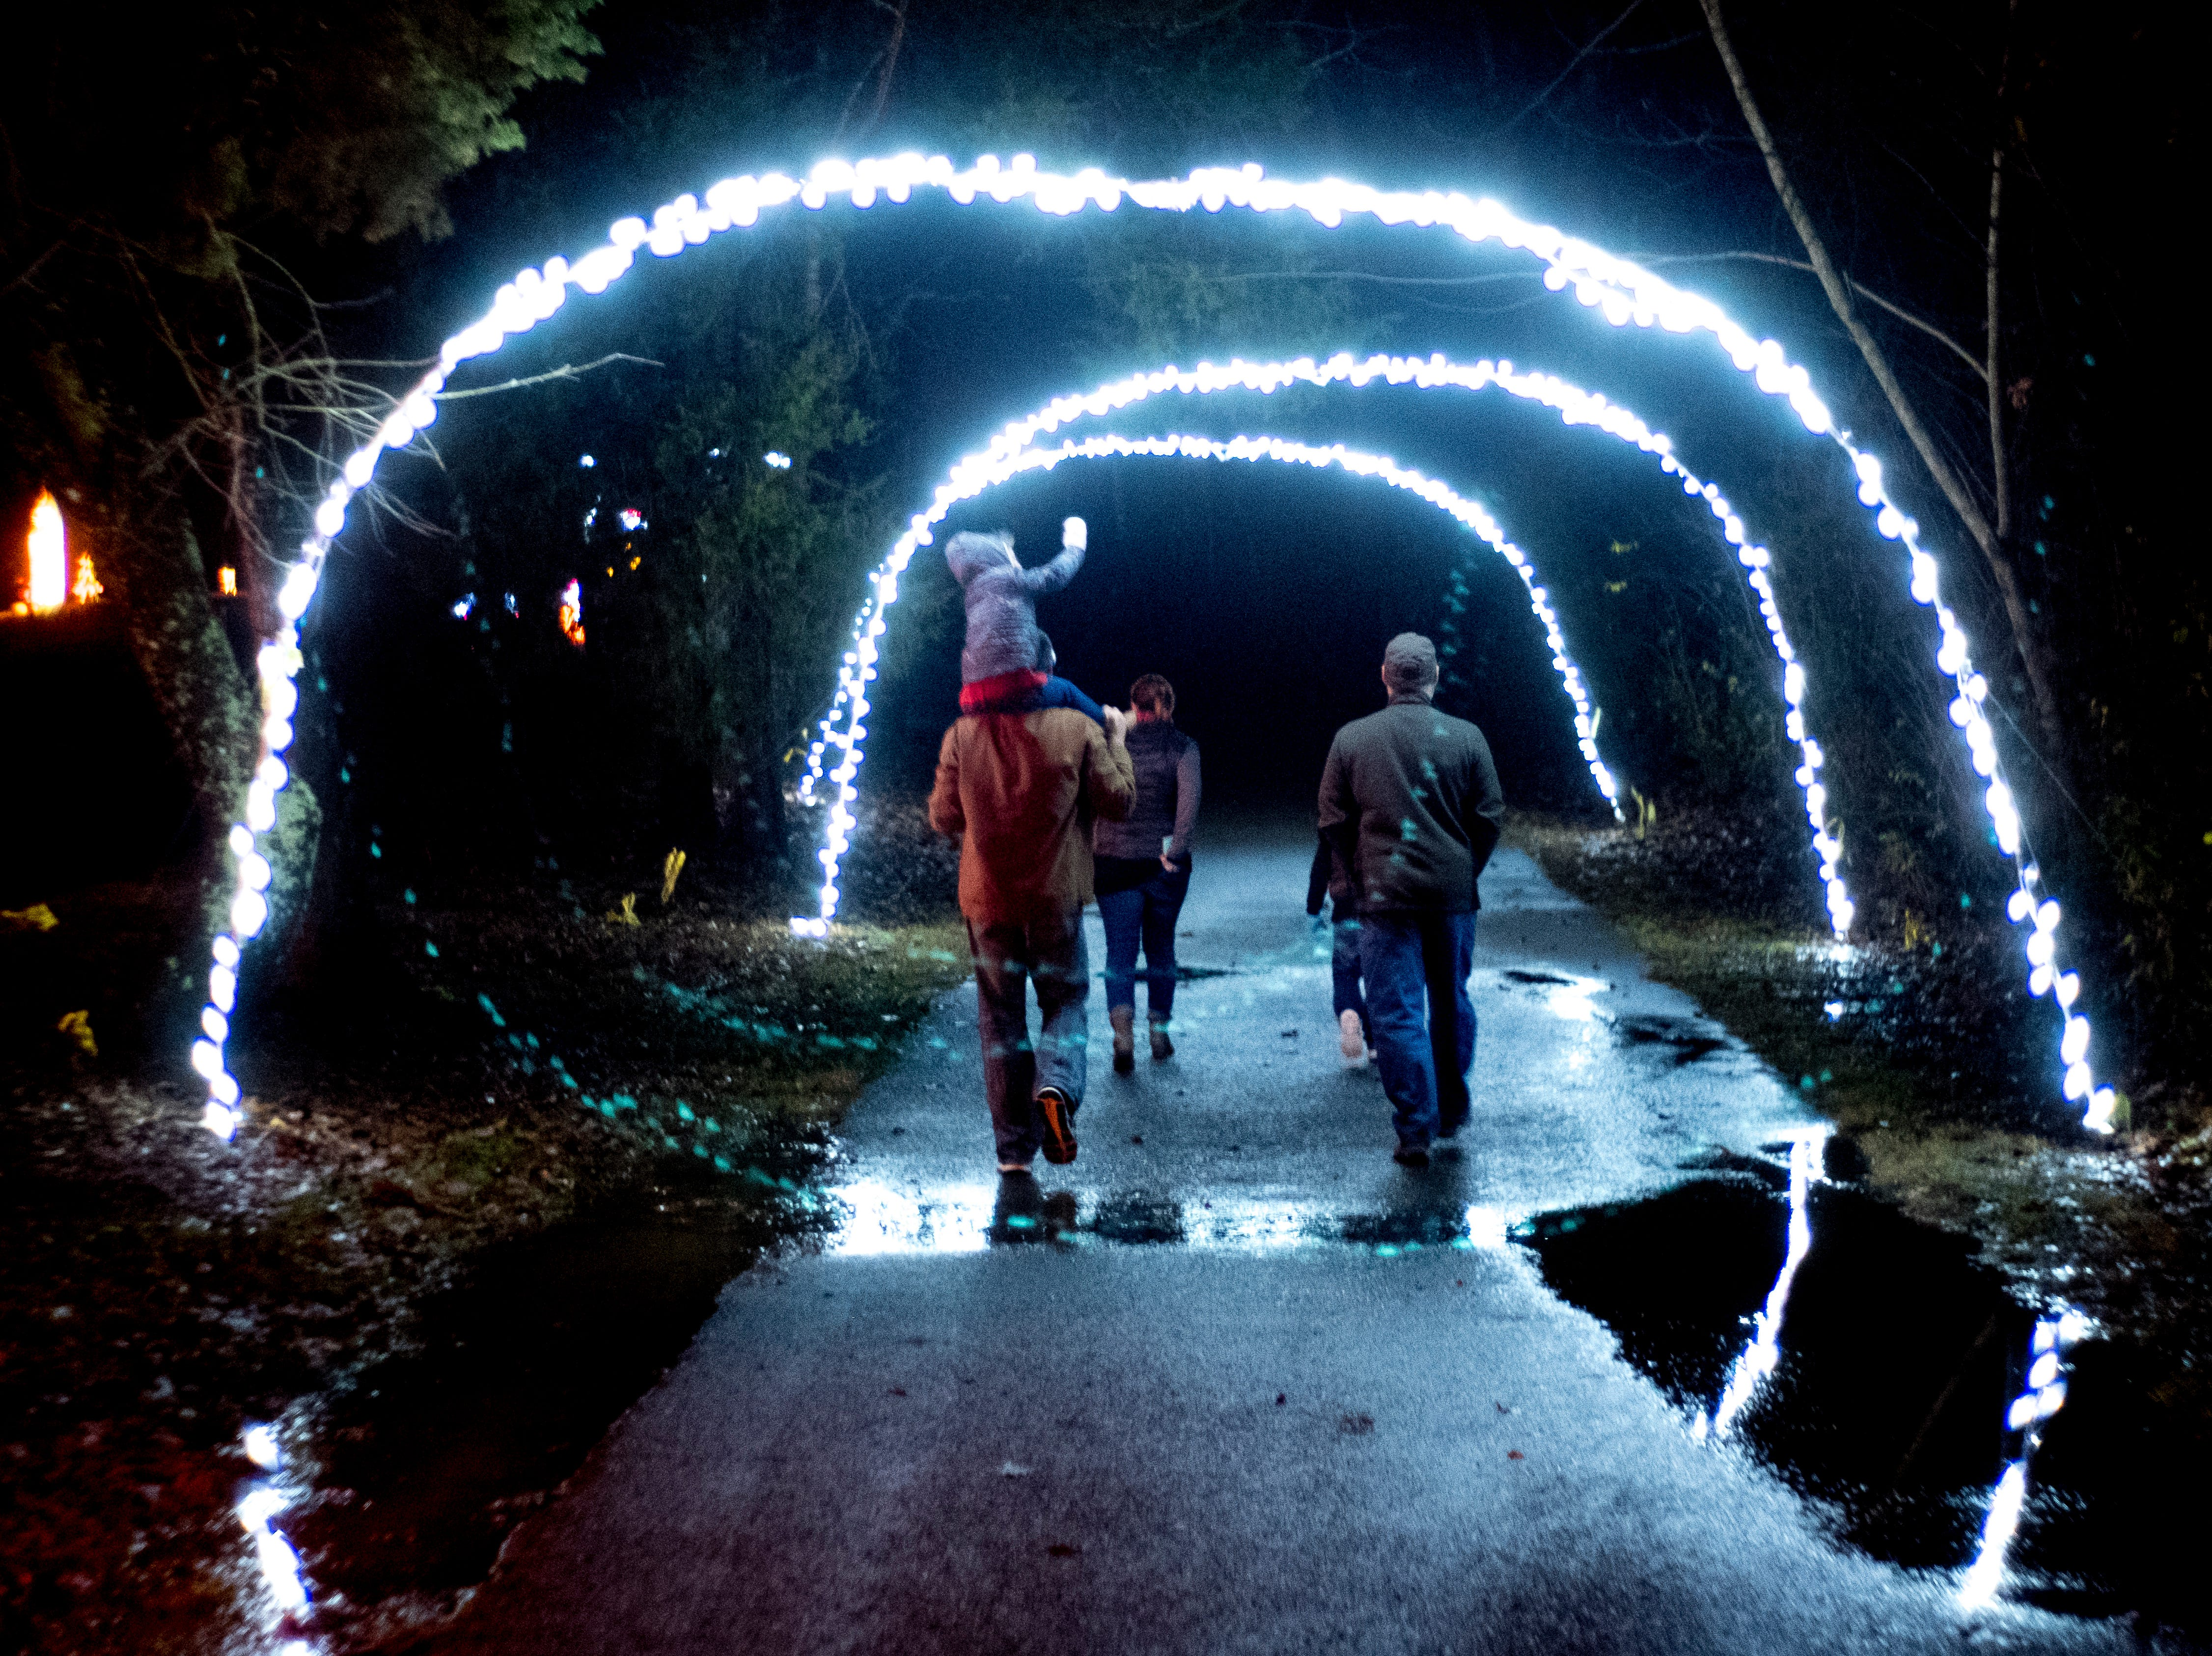 Visitors walk beneath an archway of lights at Knox CountyÕs 20th annual Holiday Festival of Lights kick off at The Cove at Concord Park in Farragut, Tennessee on Friday, December 21, 2018. The family-friendly event is free and will run through Dec. 29 from 6 to 9 p.m., excluding Christmas Eve and Christmas Day.